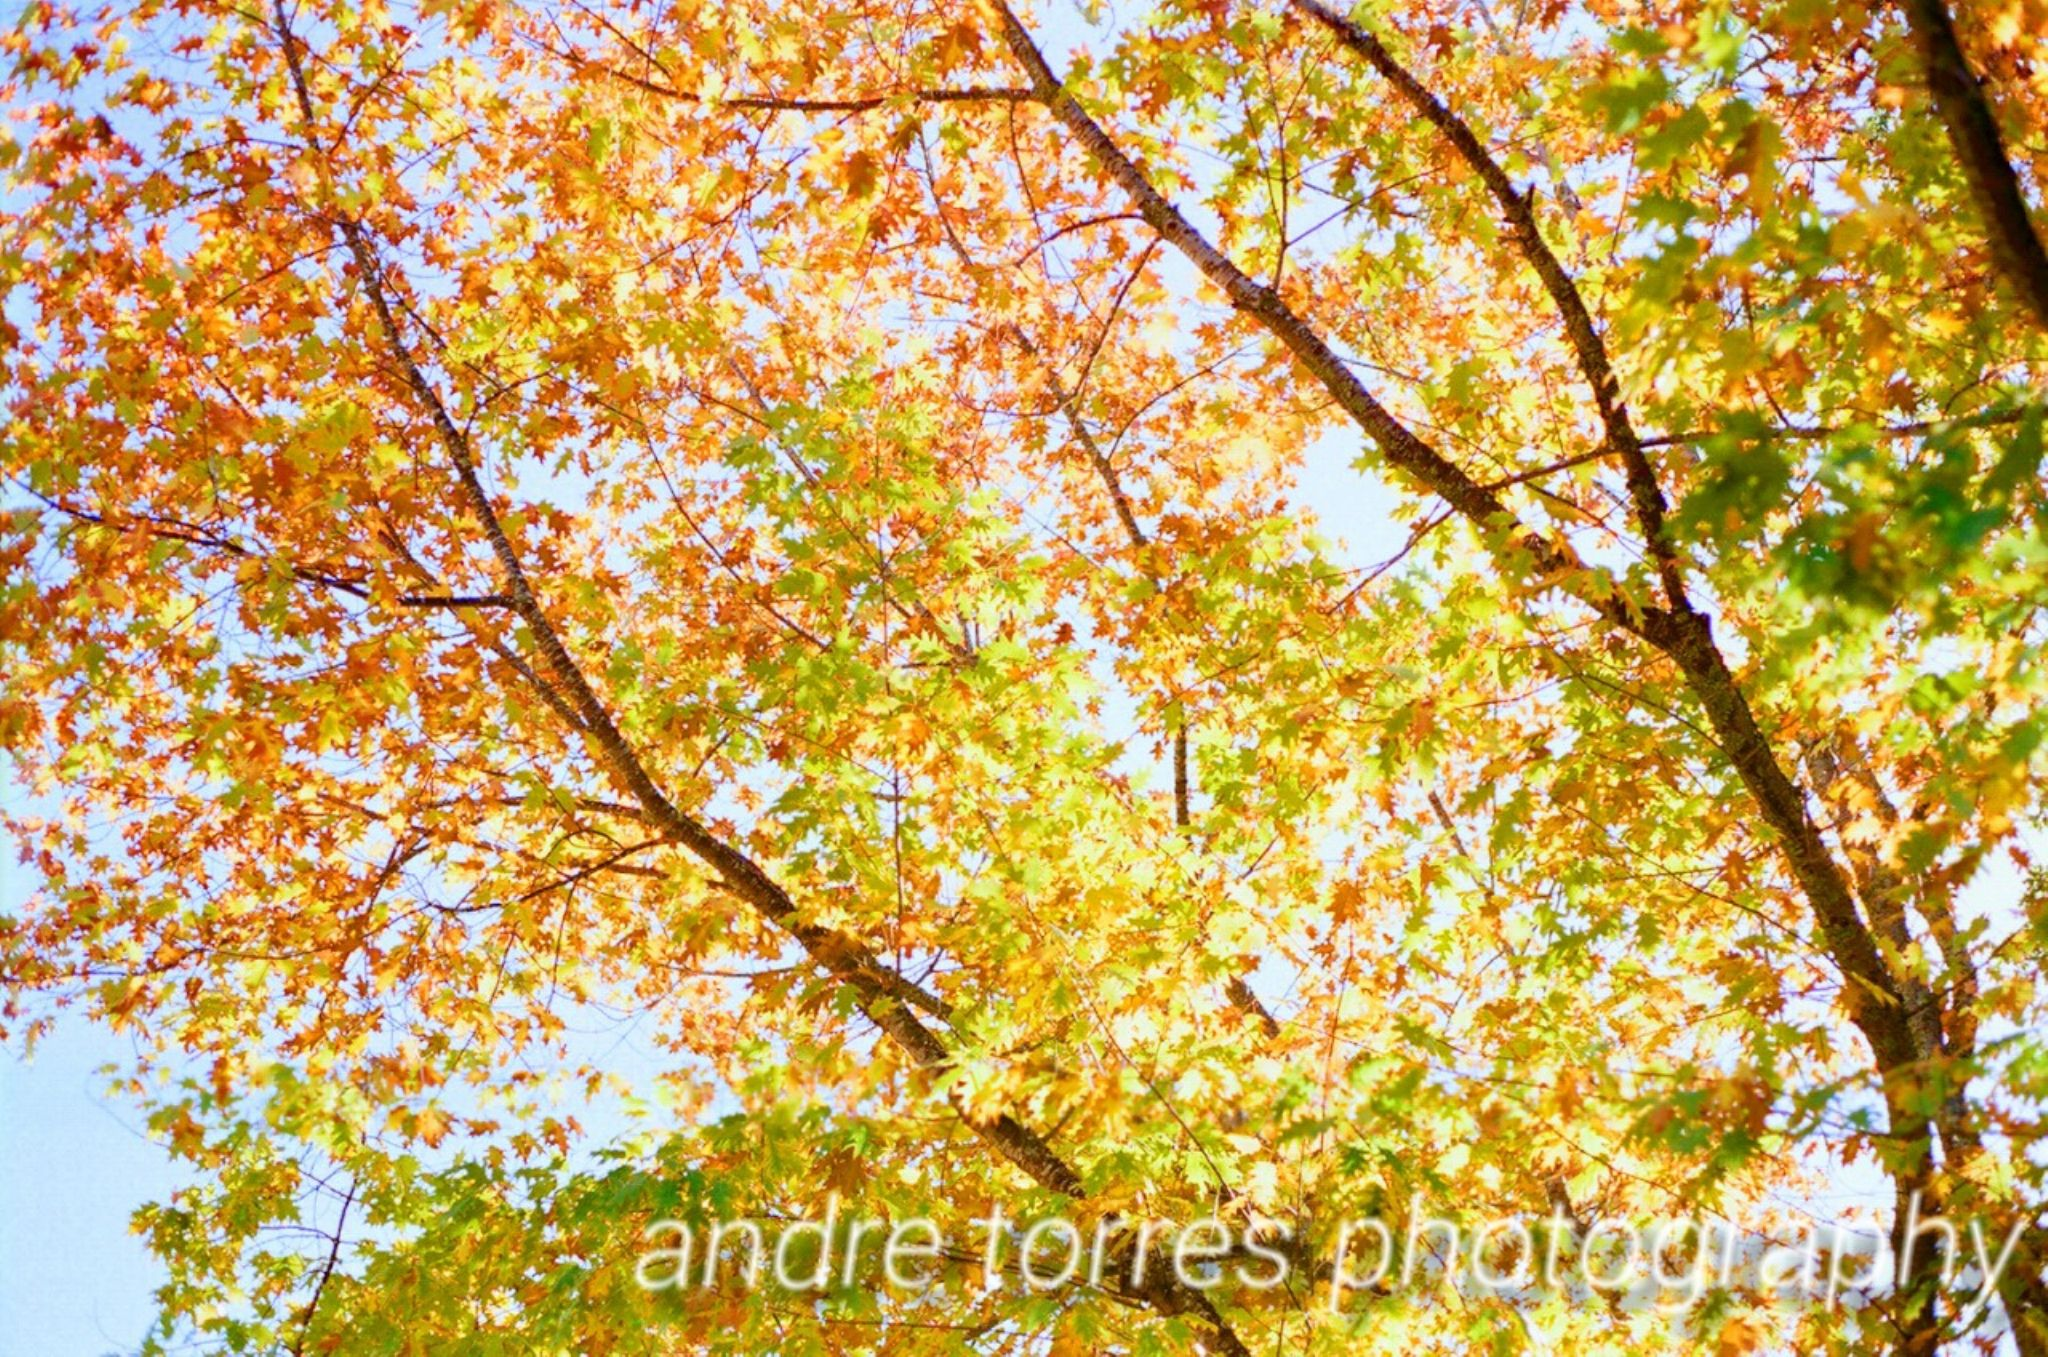 Autum Leaves by Andre M. Torres